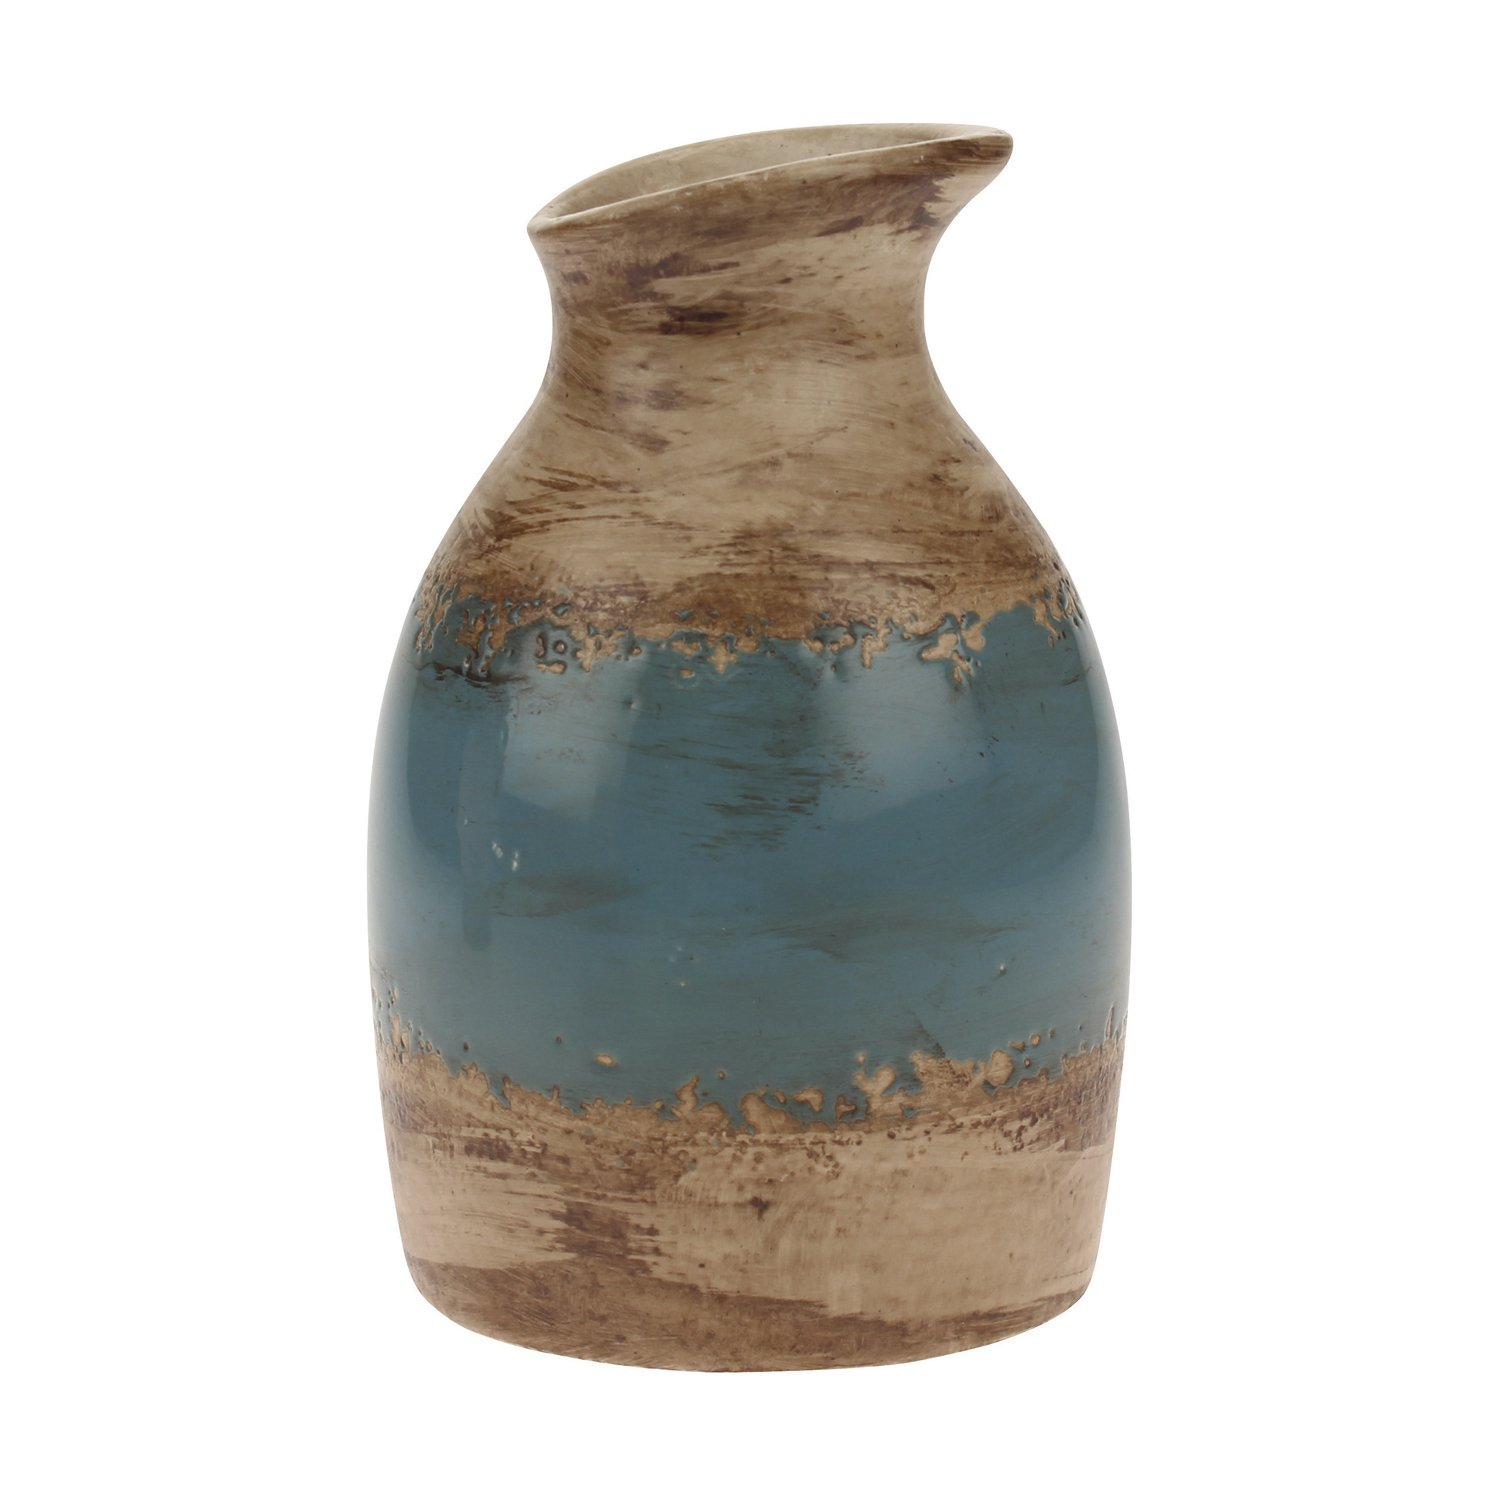 Stonebriar Decorative Brown and Denim Blue Ceramic Vase, For Floral Arrangements and Dried Flower Filler, Centerpiece for Coffee, Kitchen, and Dining Room Table